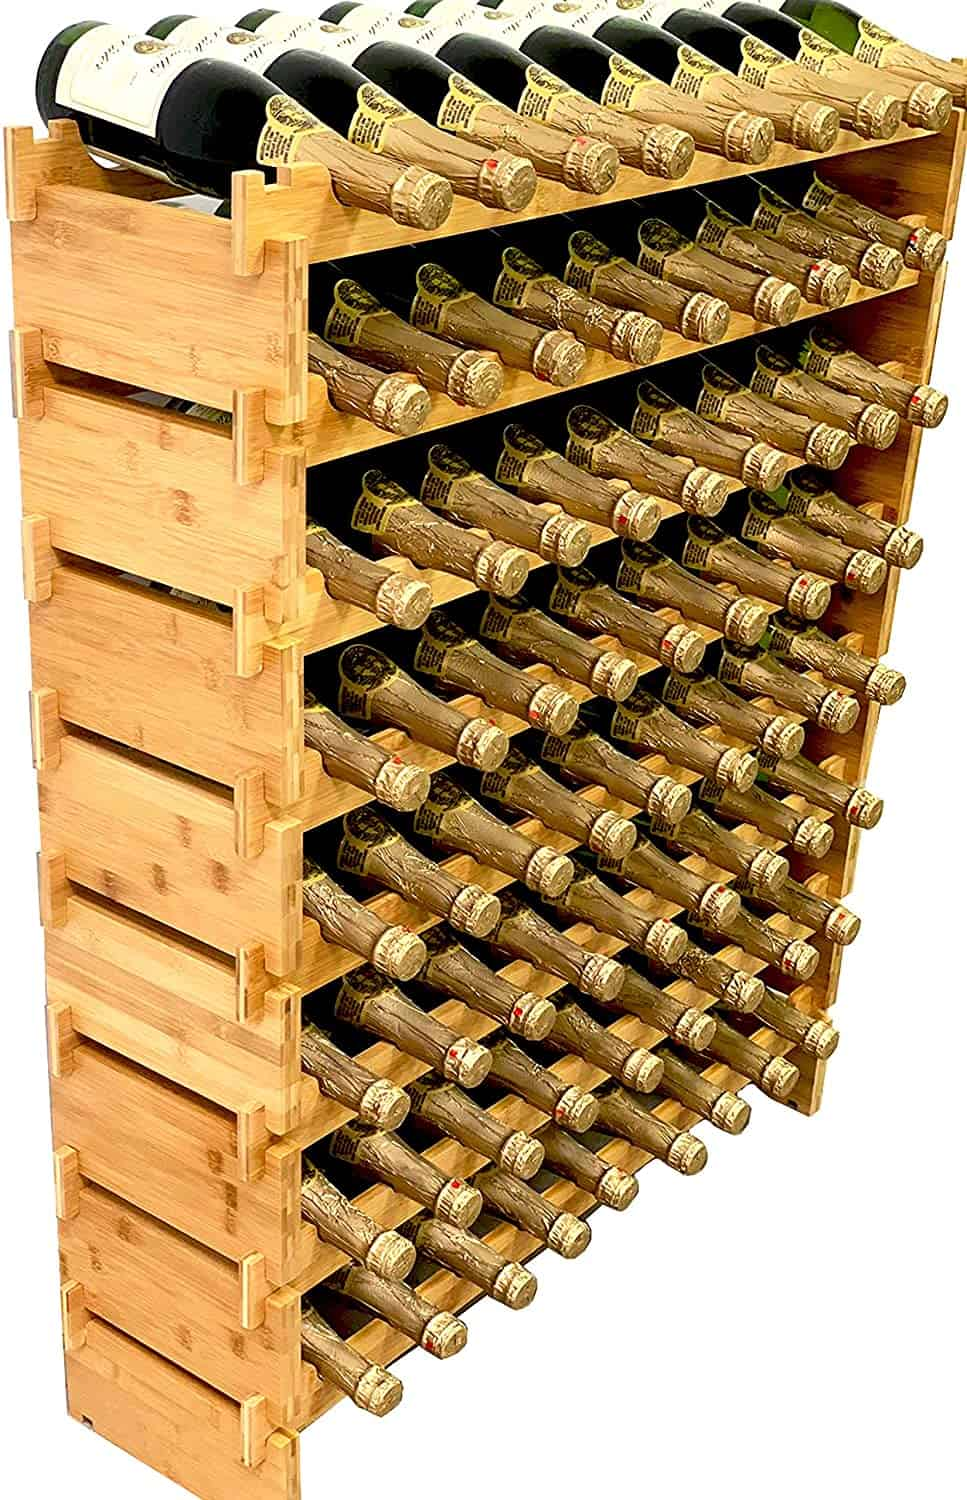 DECOMIL 72 Bottle Stackable Modular Wine Rack Wine Storage Rack Solid Bamboo Wine Holder Display Shelves Wobble Free Eight Tier 72 Bottle Capacity min